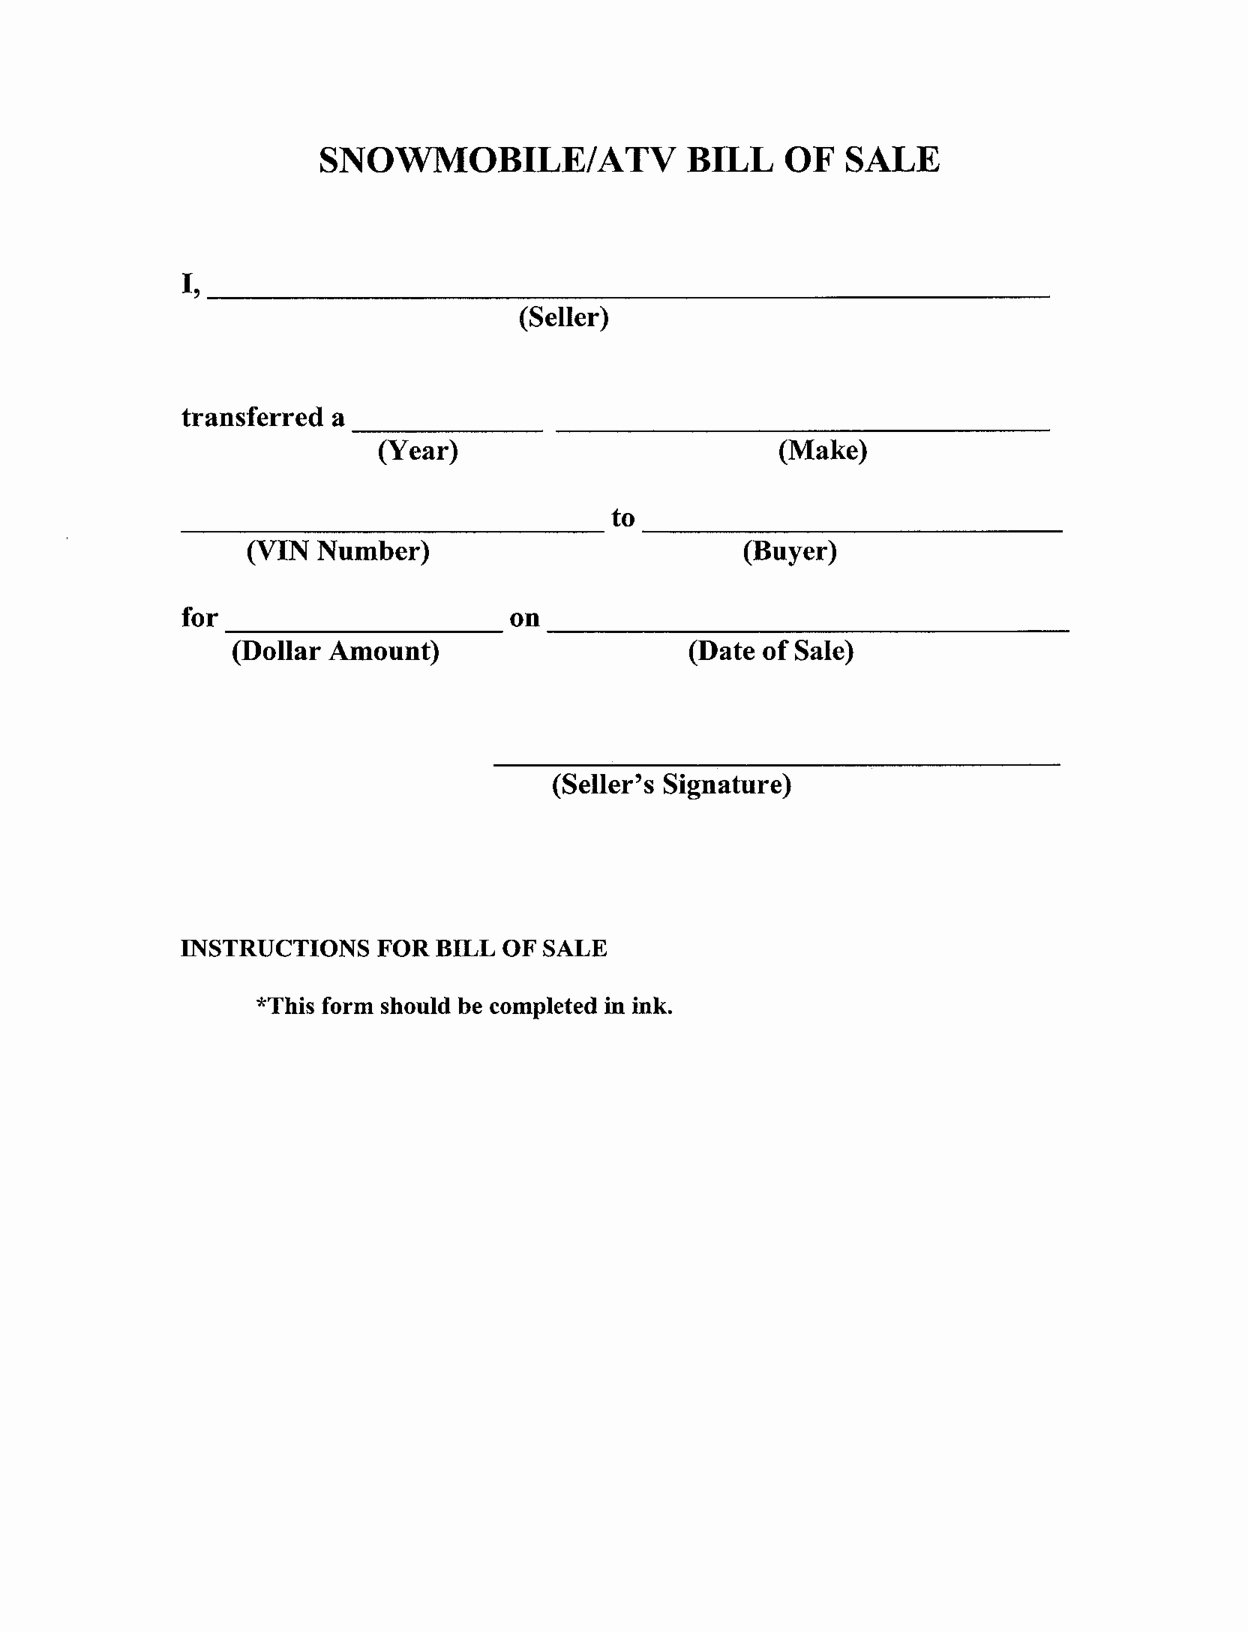 Simple Bill Of Sale Example New Free Printable Bill Of Sale Templates form Generic